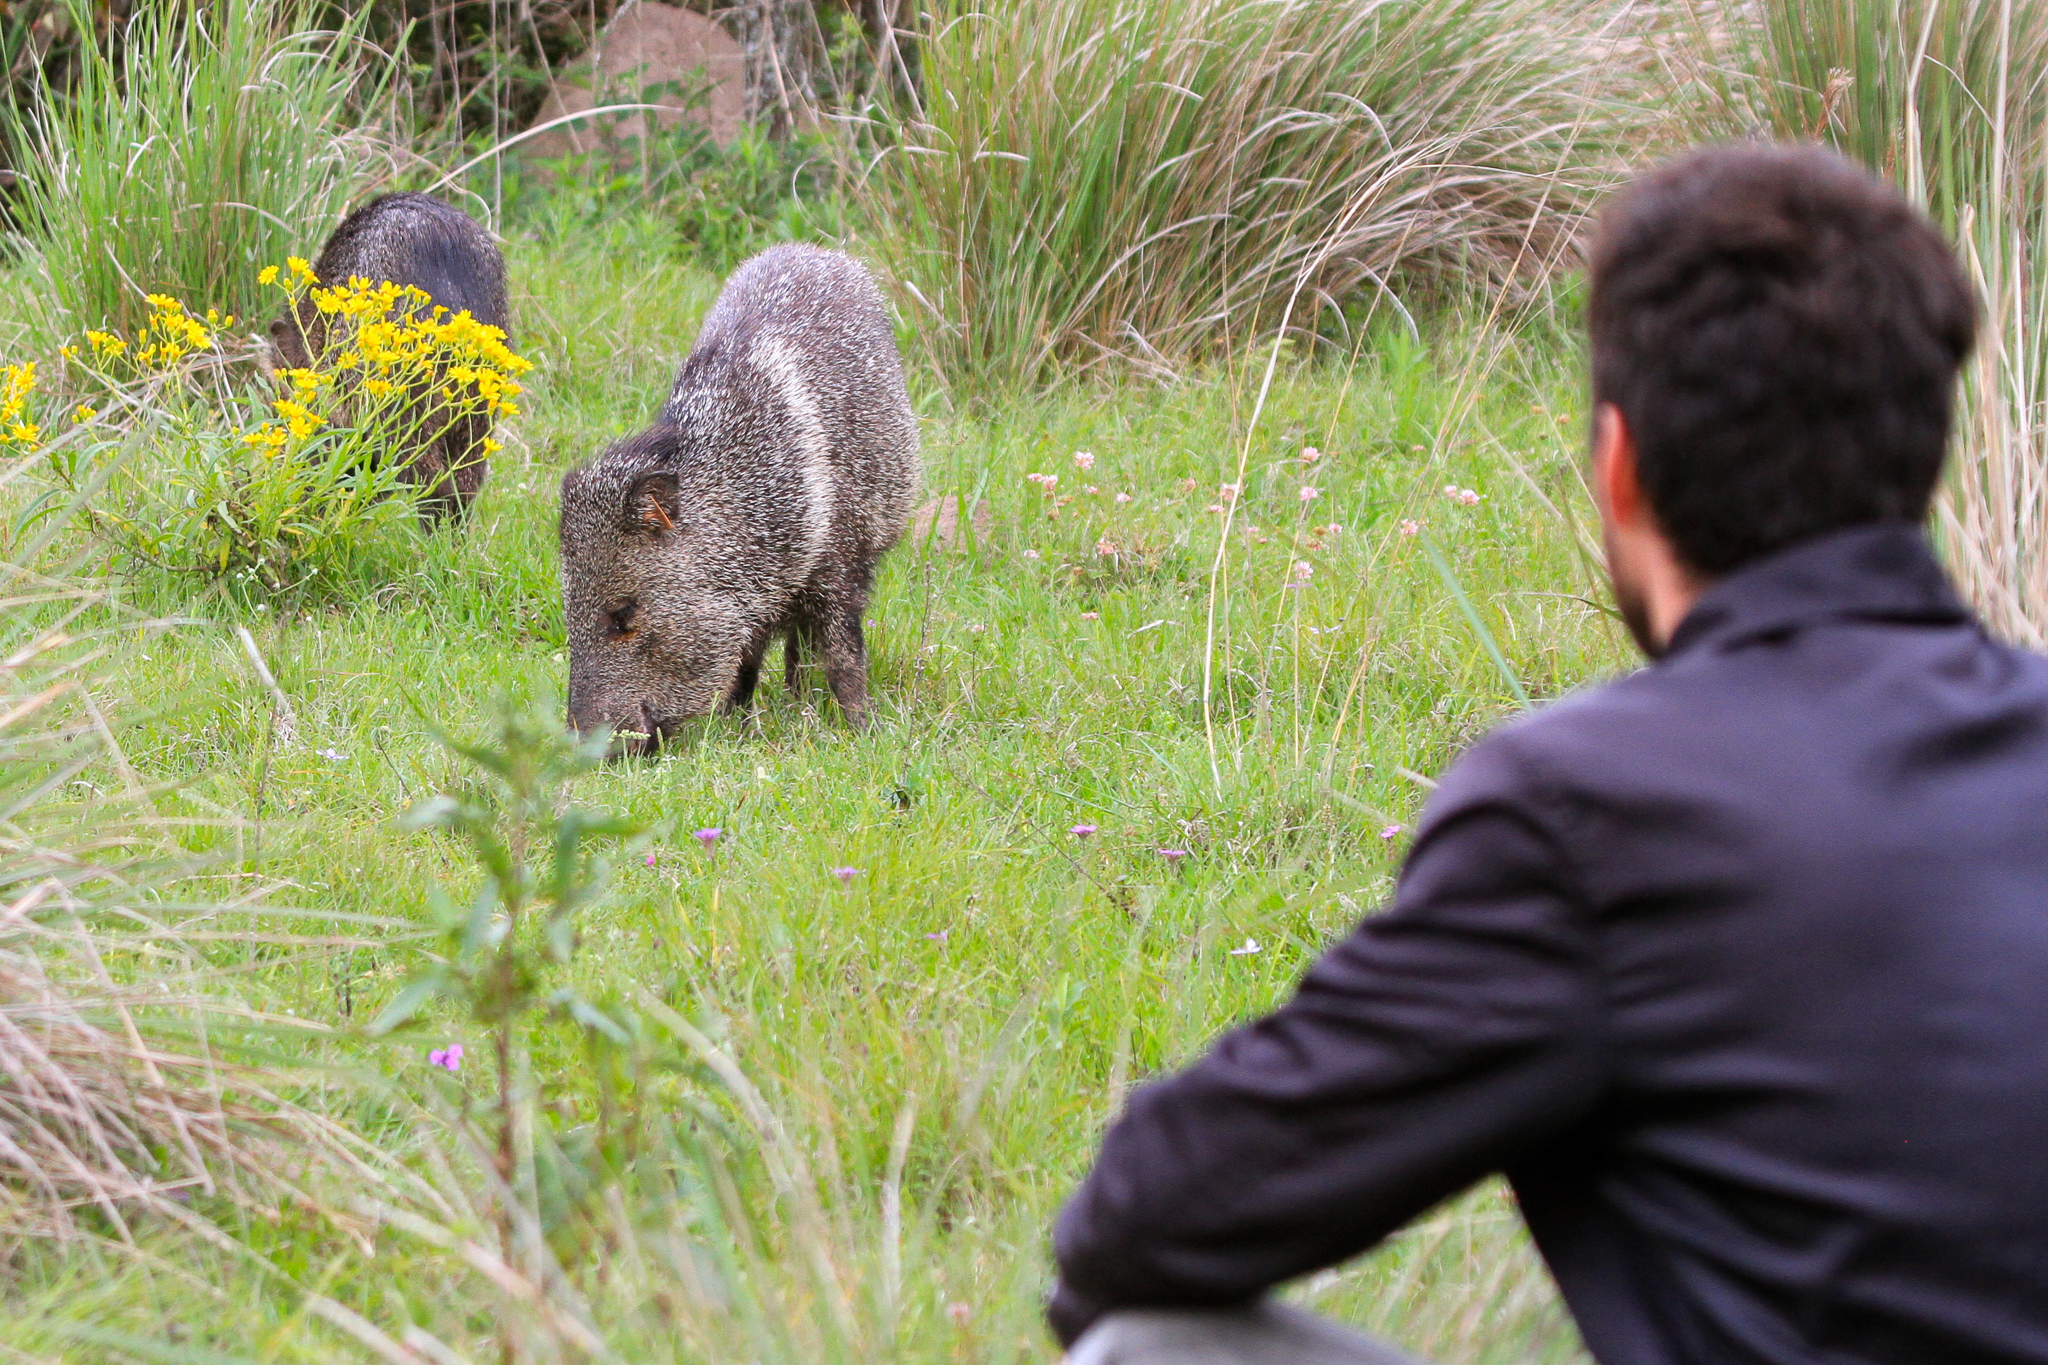 Manuel Galetto, a biologist with the Conservation Land Trust, observes at close quarters a herd of reintroduced collared peccaries. Once native to Iberá, these individuals are adapting well to their species' former home.—Photo by Mike Unwin